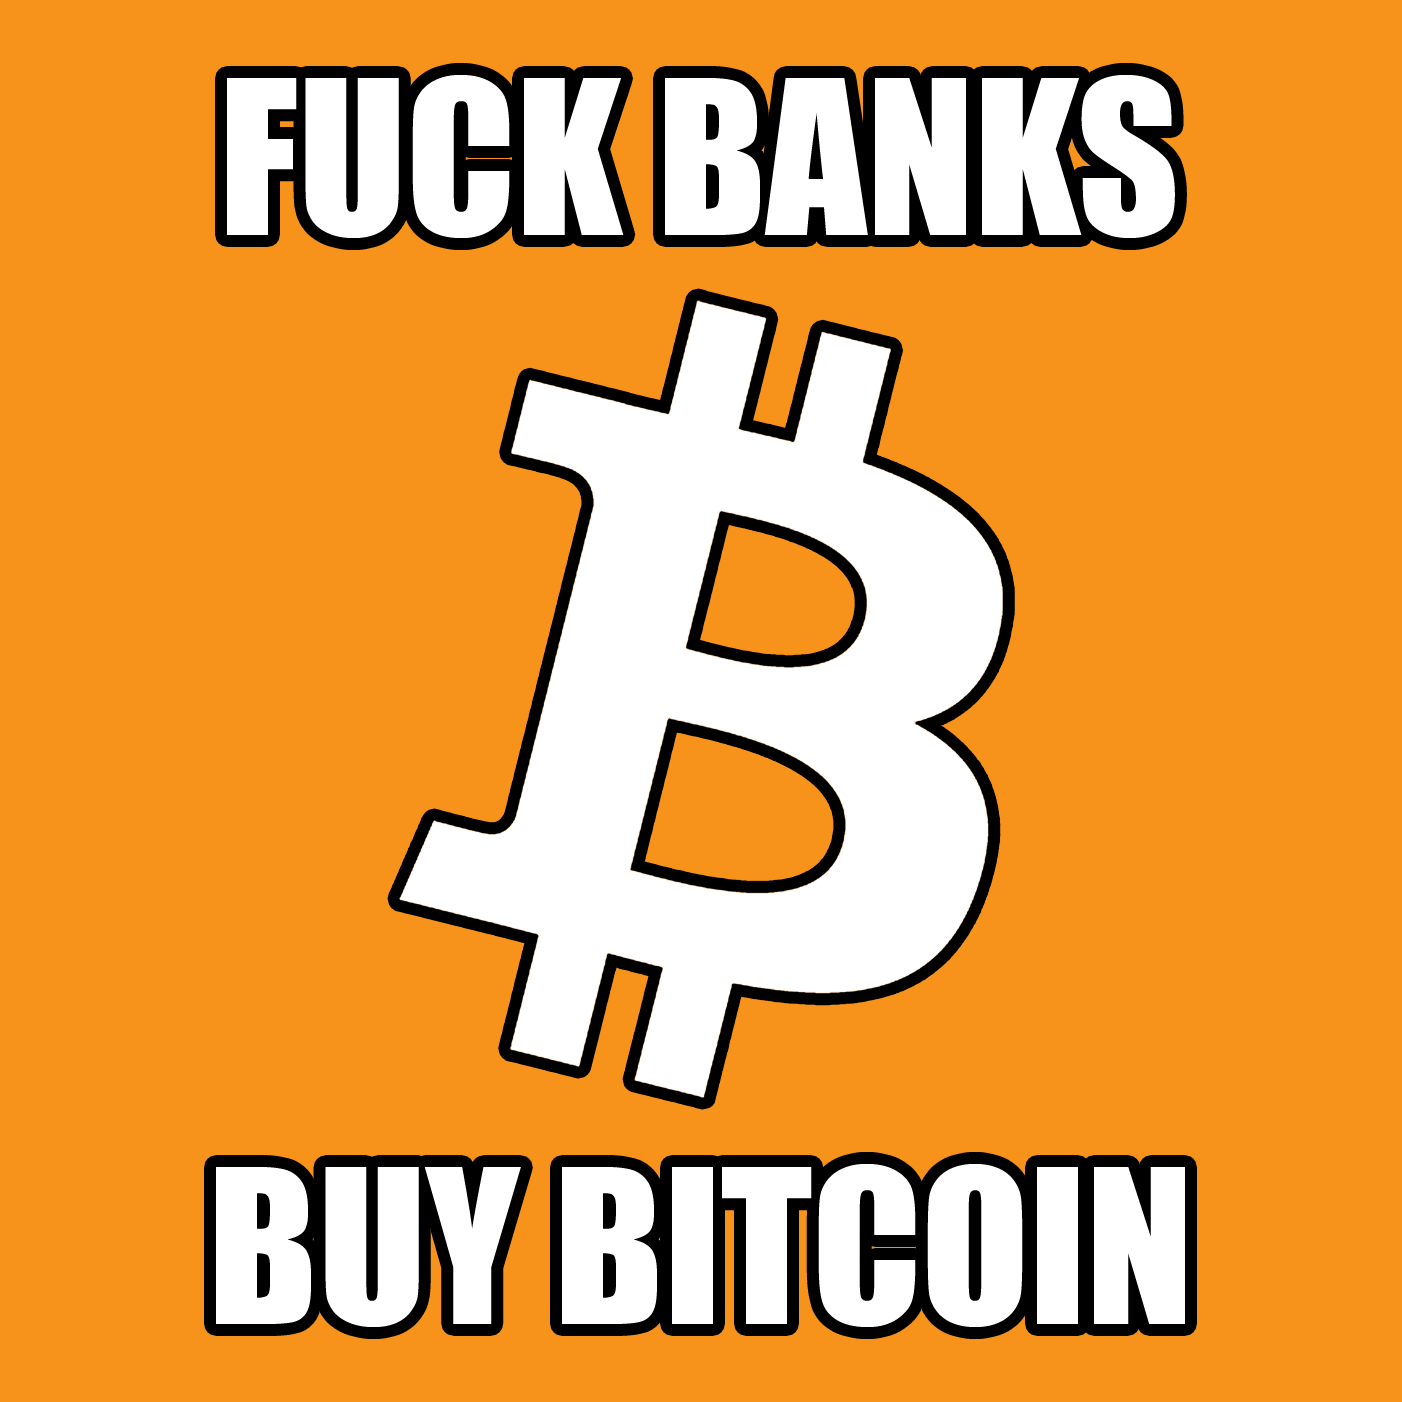 fuck banks buy bitcoin bitcoin sticker